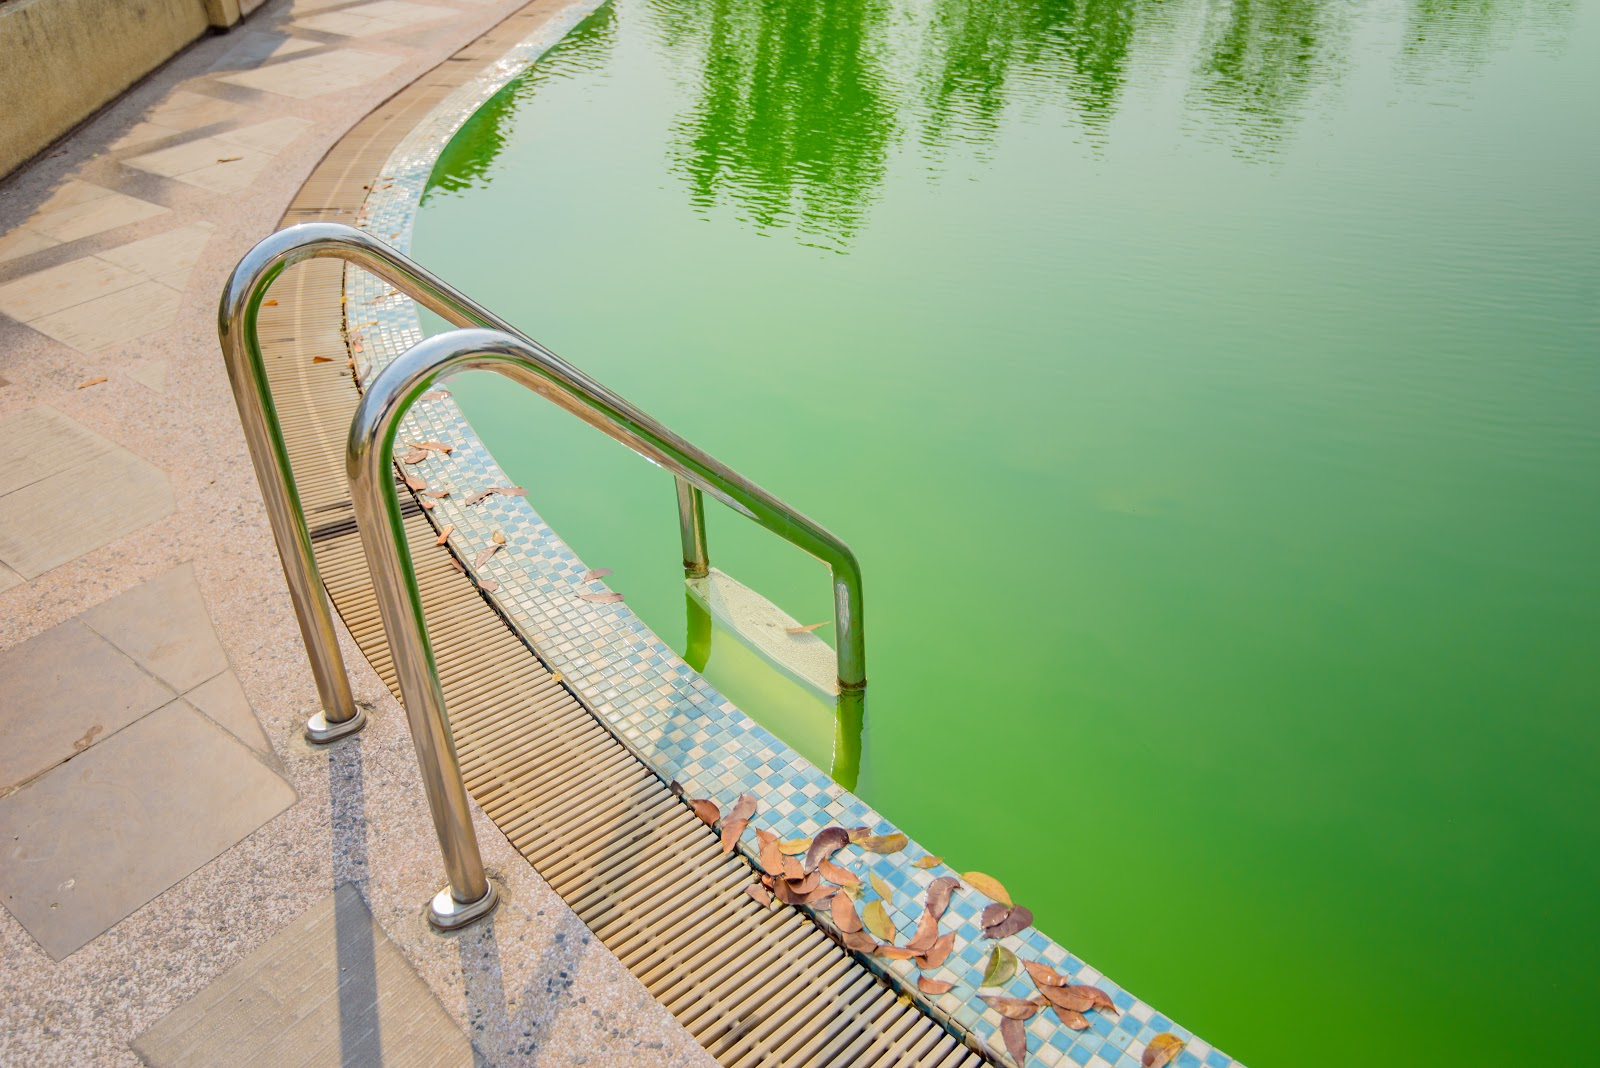 an inground pool with cloudy green pool water